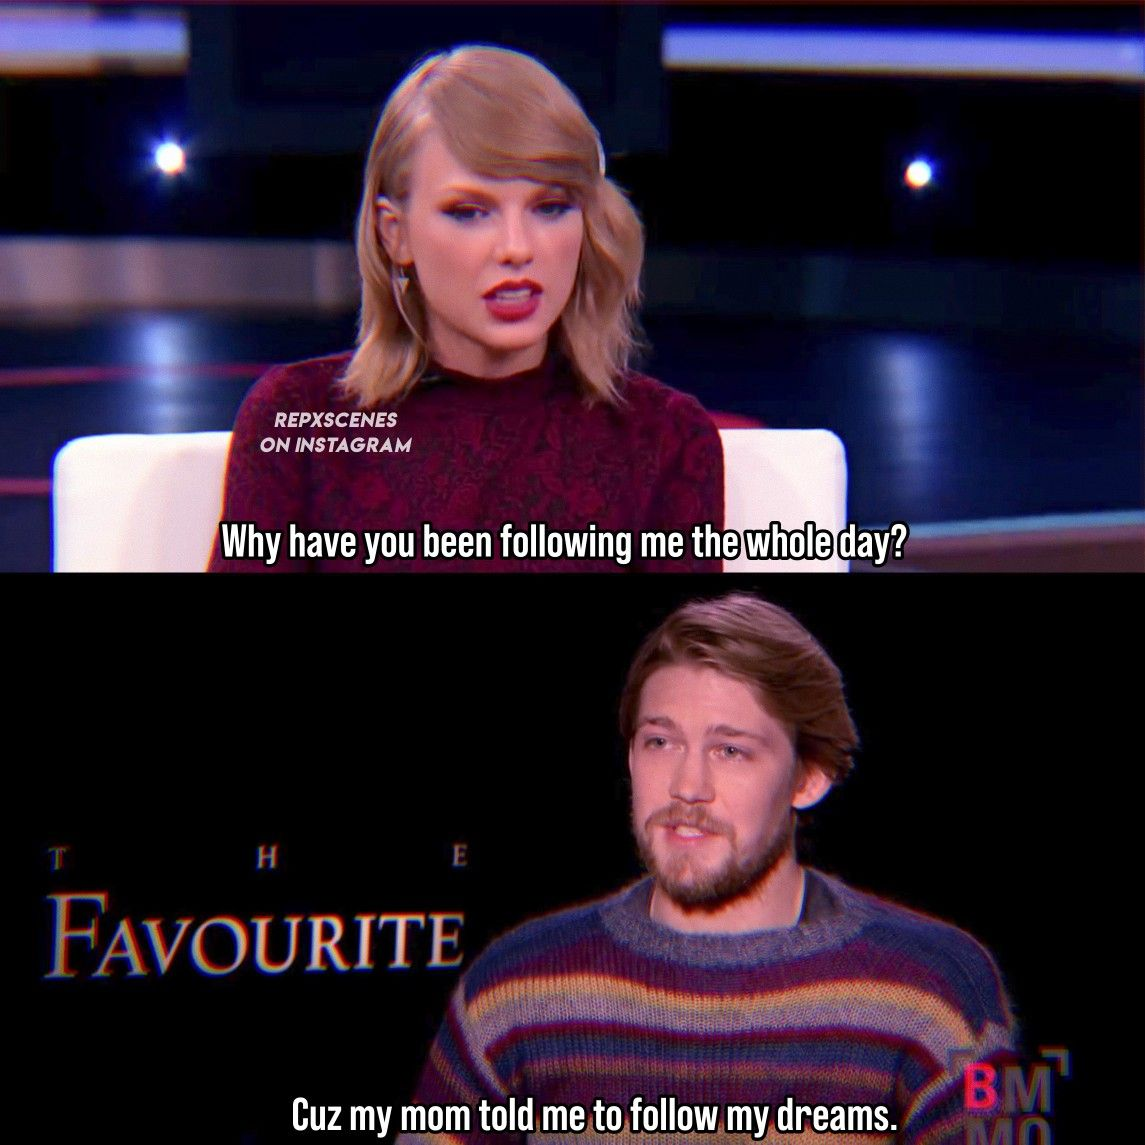 Pin by ɇ 𝔩 𝐥 𝐚 on memes in 2020 (With images) Taylor